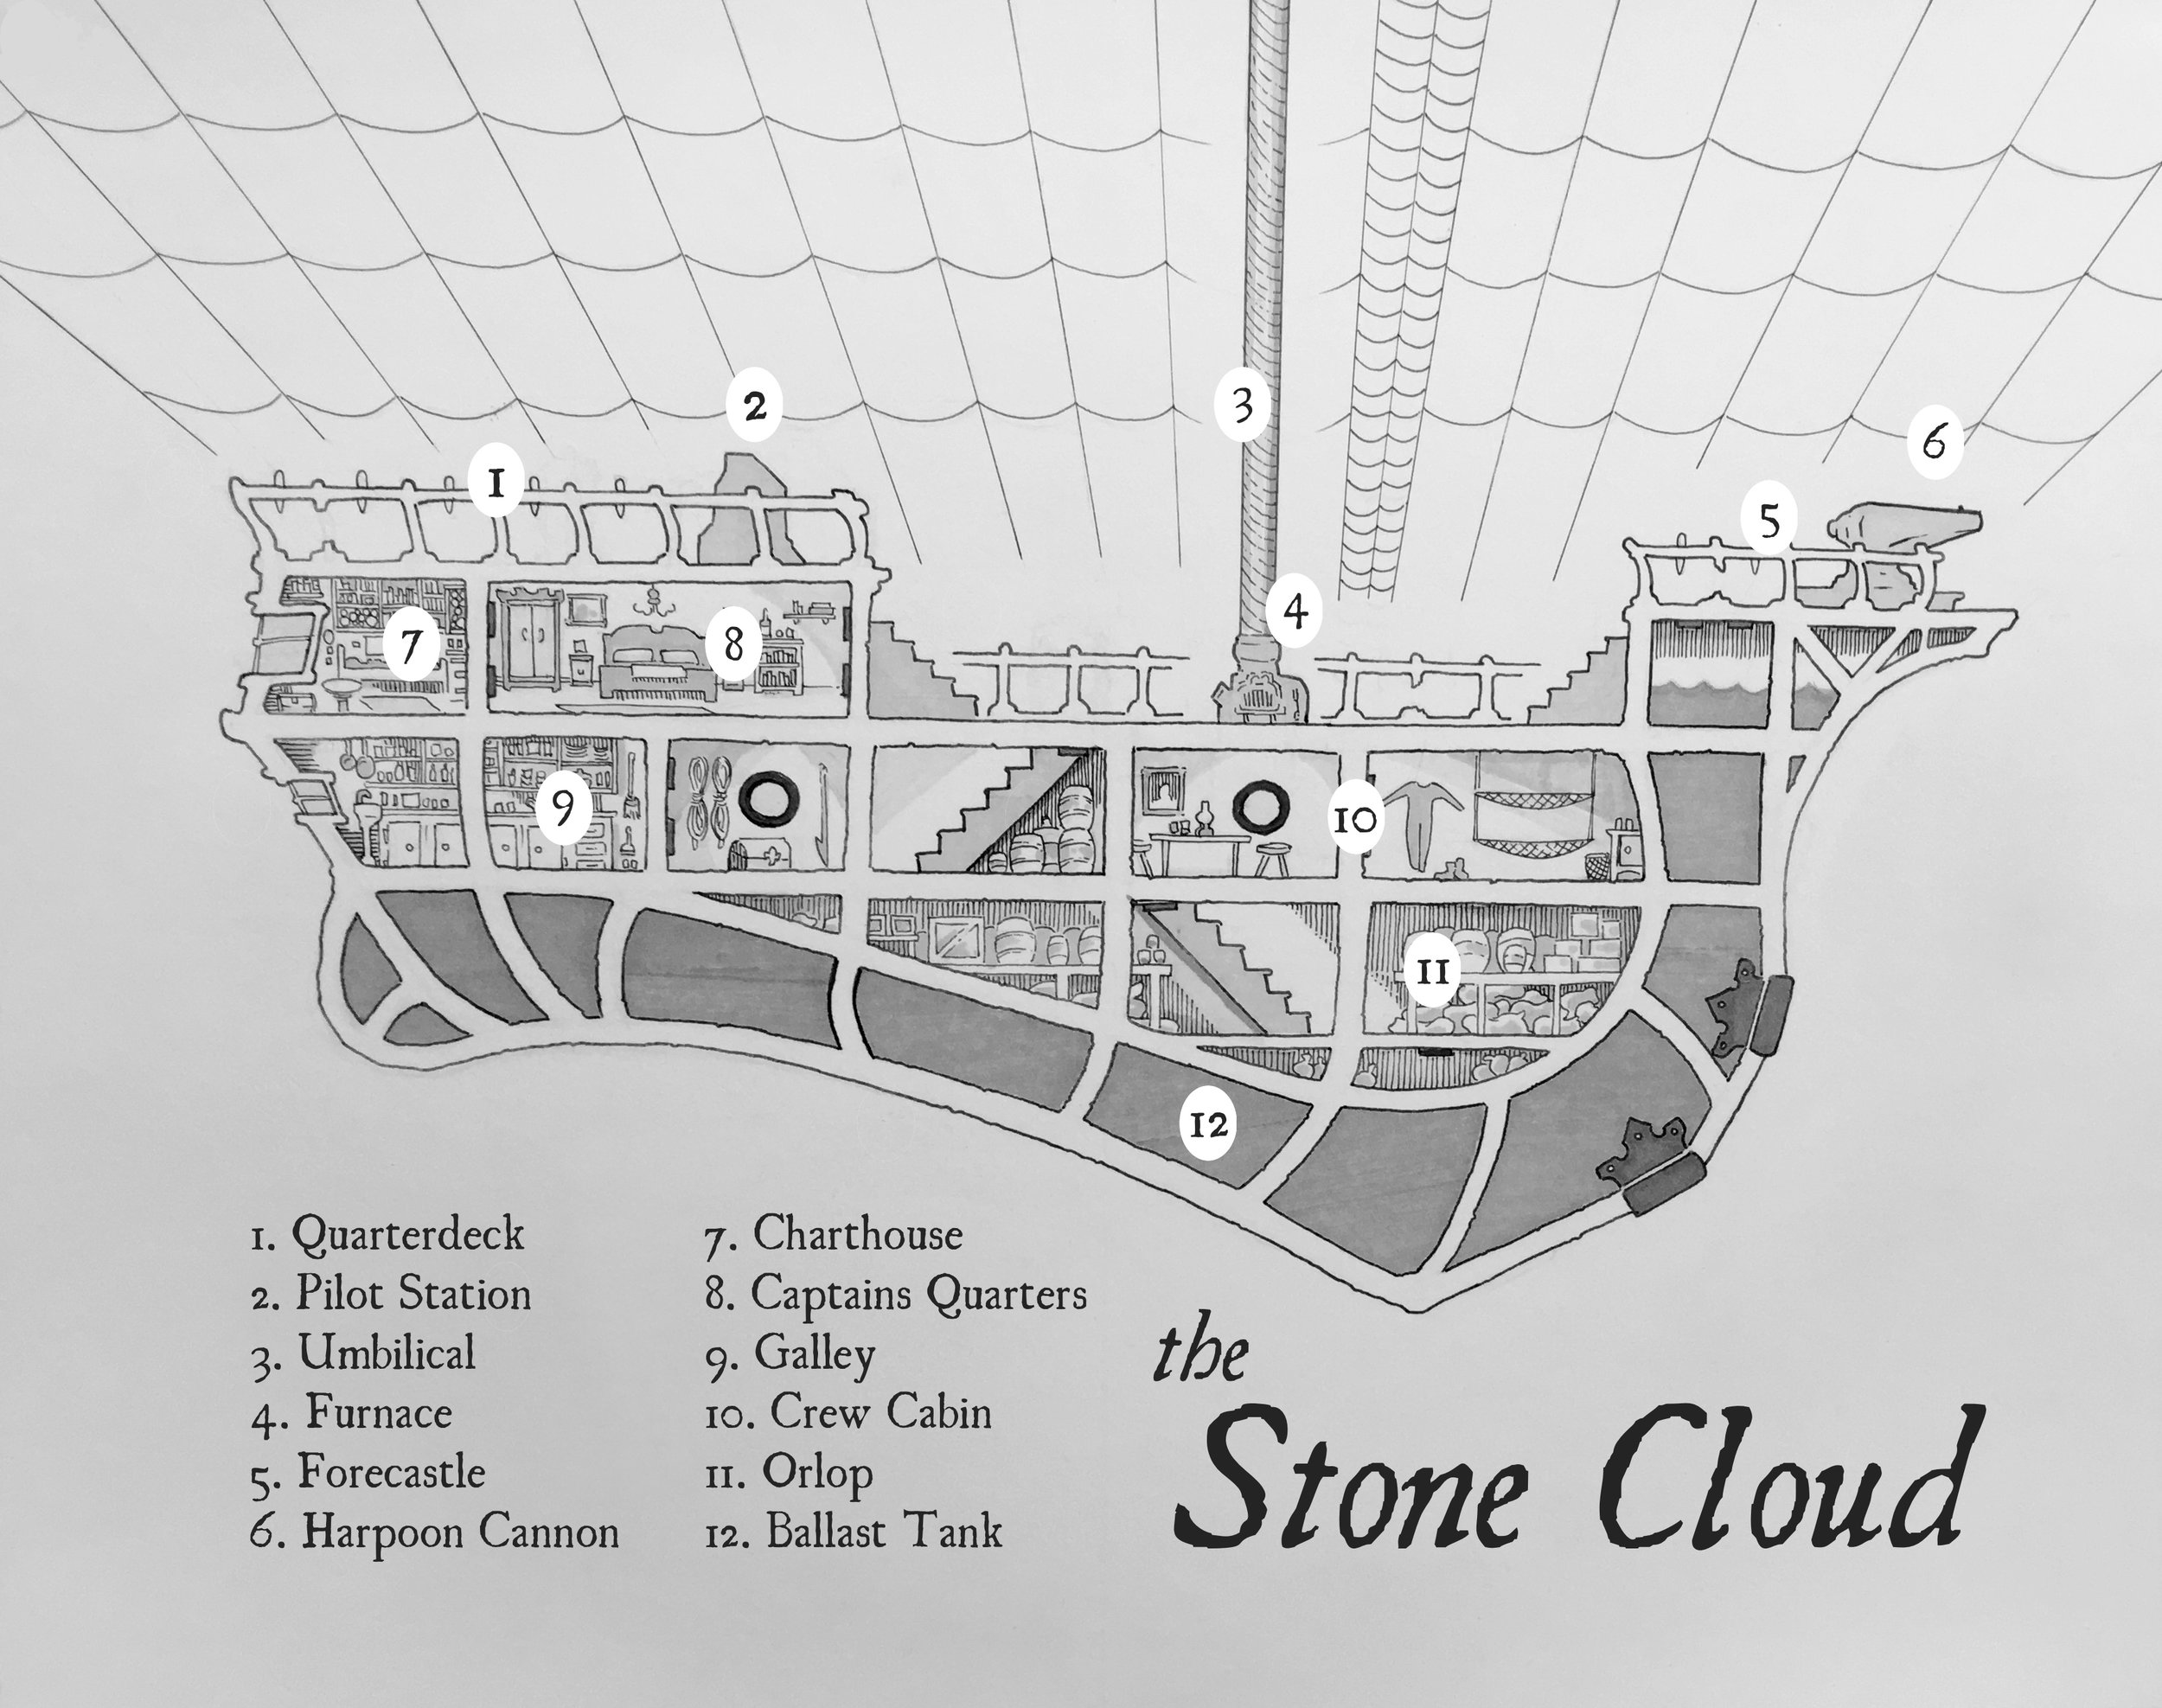 The  Stone Cloud , Hardcover Edition (Ink and marker, 2017)